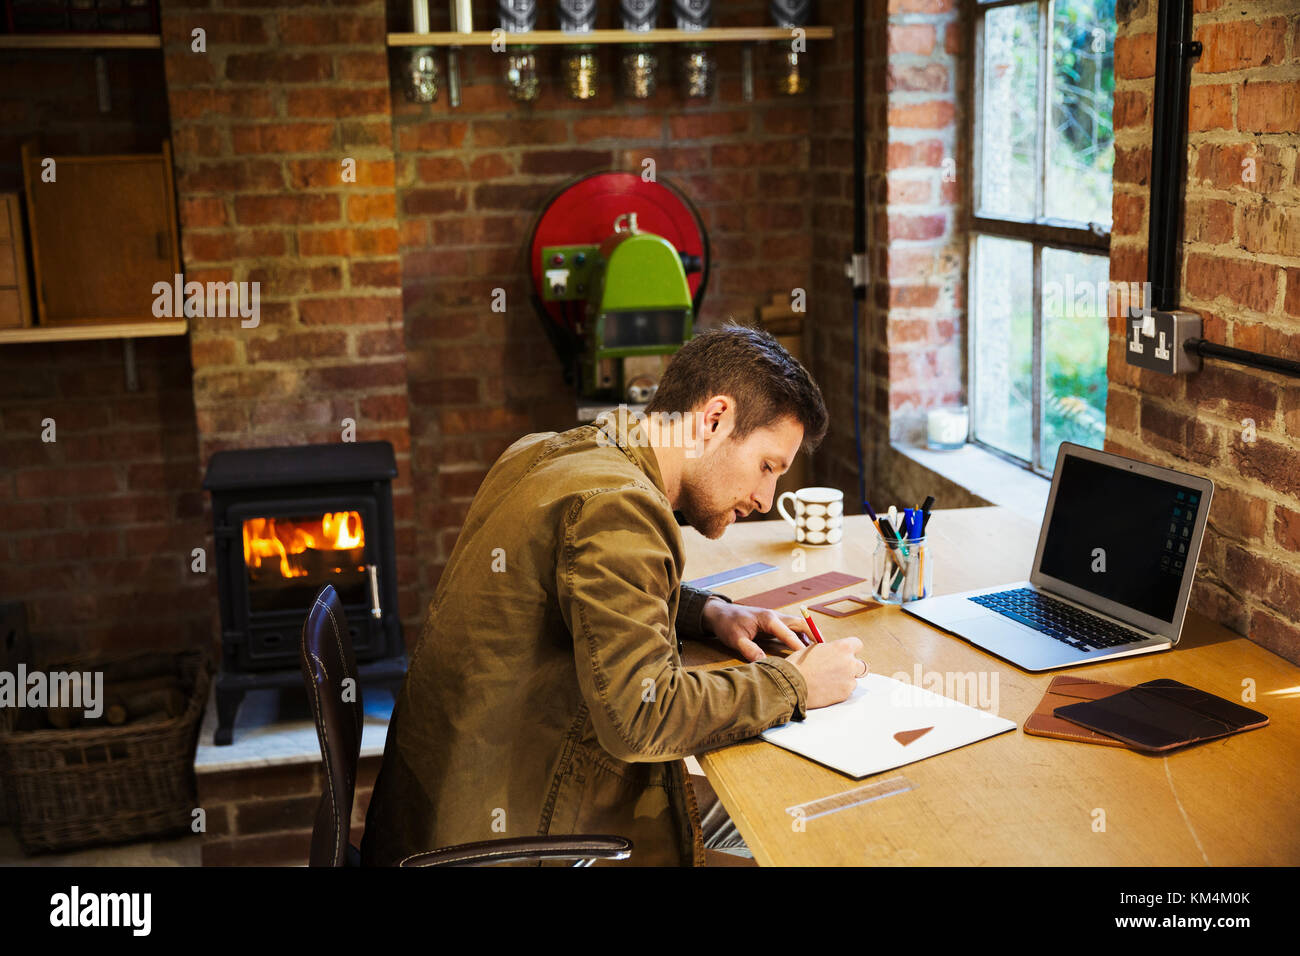 A designer seated in his leatherwork workshop, at a desk drawing on paper. A woodburning stove with a lit fire. - Stock Image